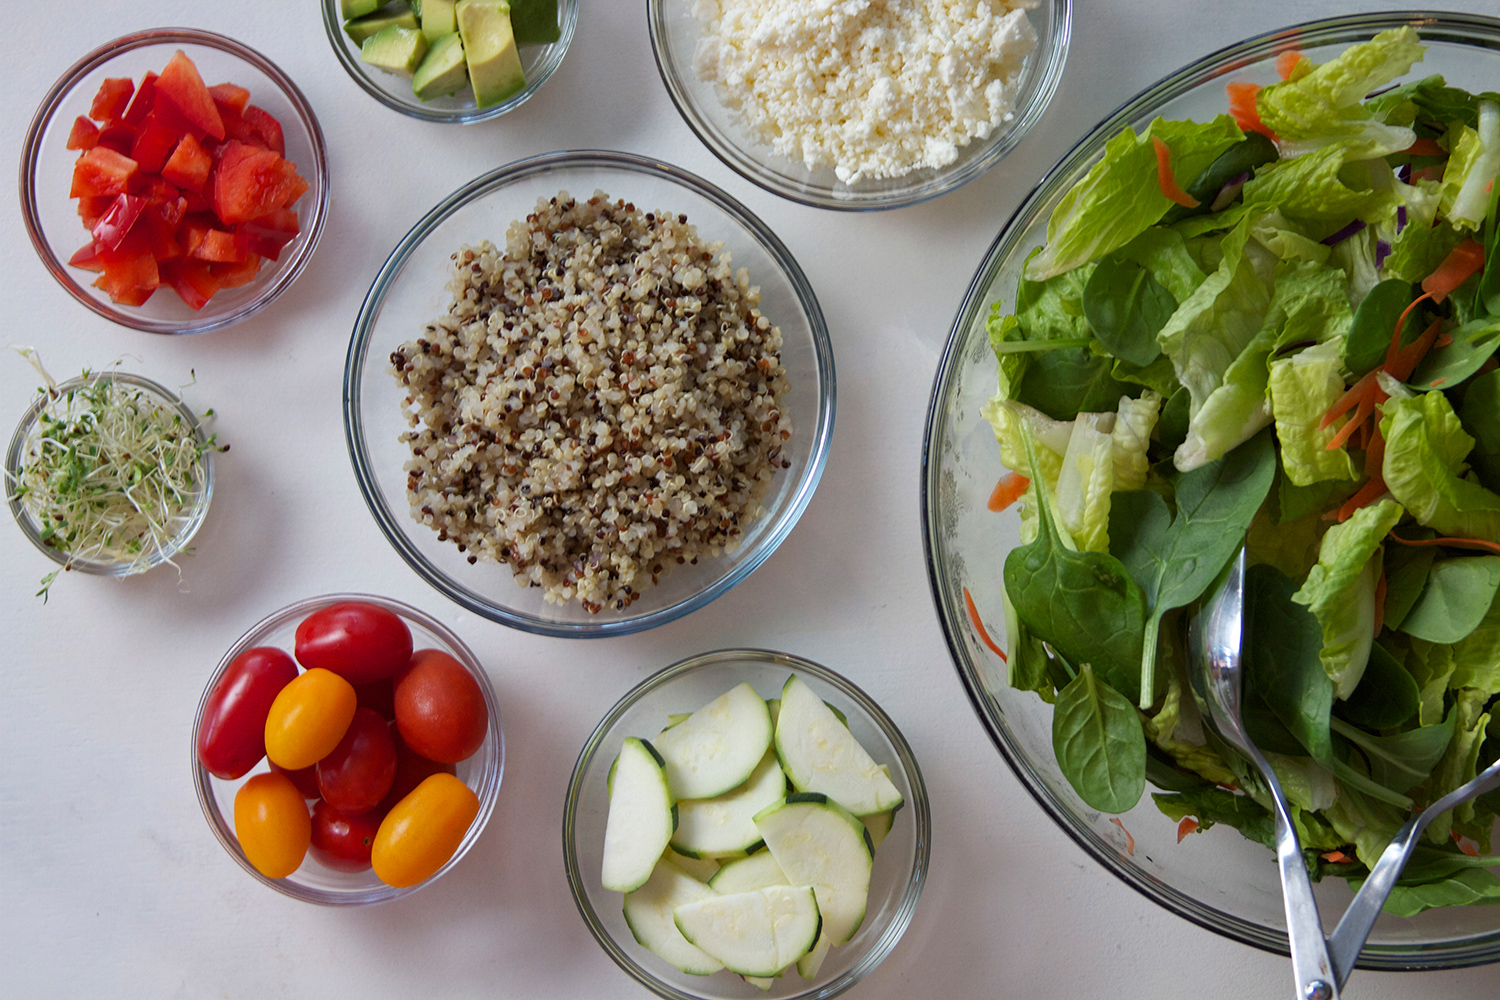 7 Tips For Building New Healthy Habits